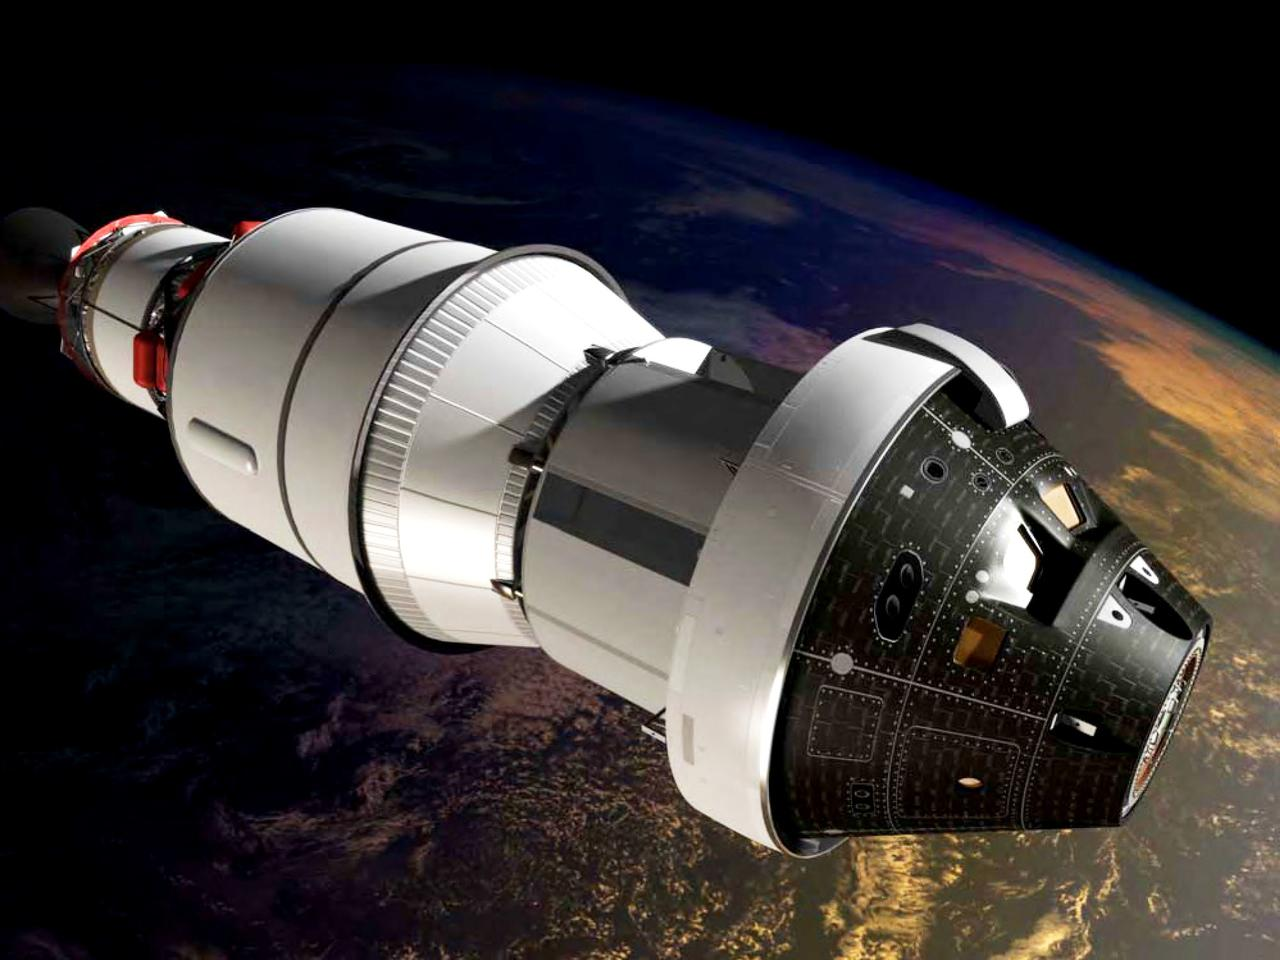 The proposals are designed to support NASA's deep space missions, such as that which Orion will carry out